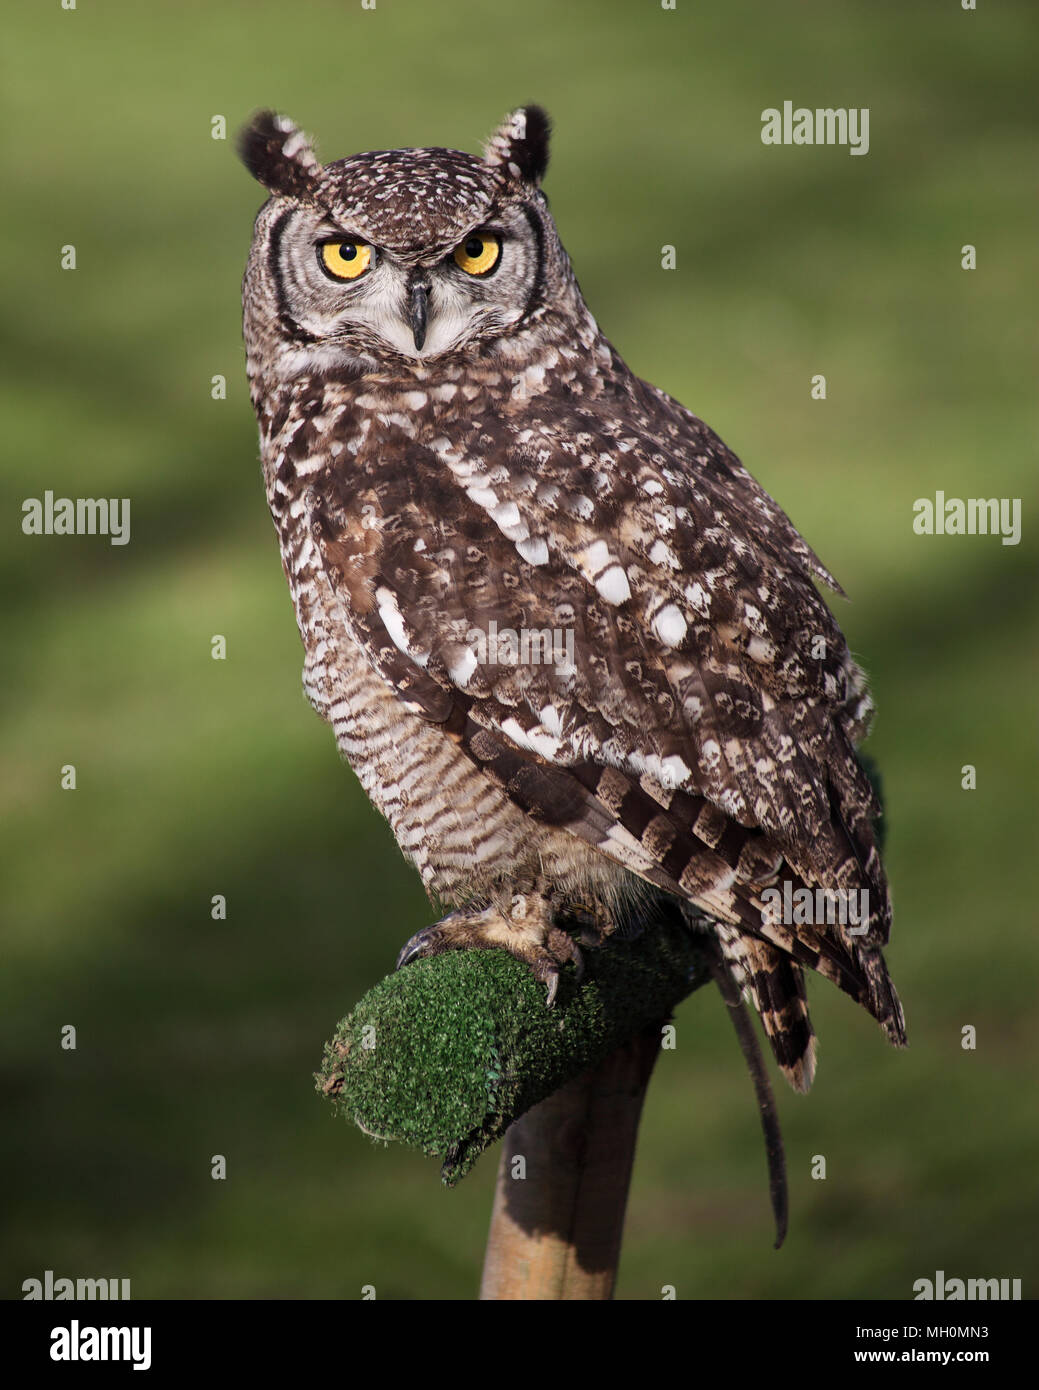 Great Horned Owl with long ear-like tufts and piercing yellow eyes. - Stock Image